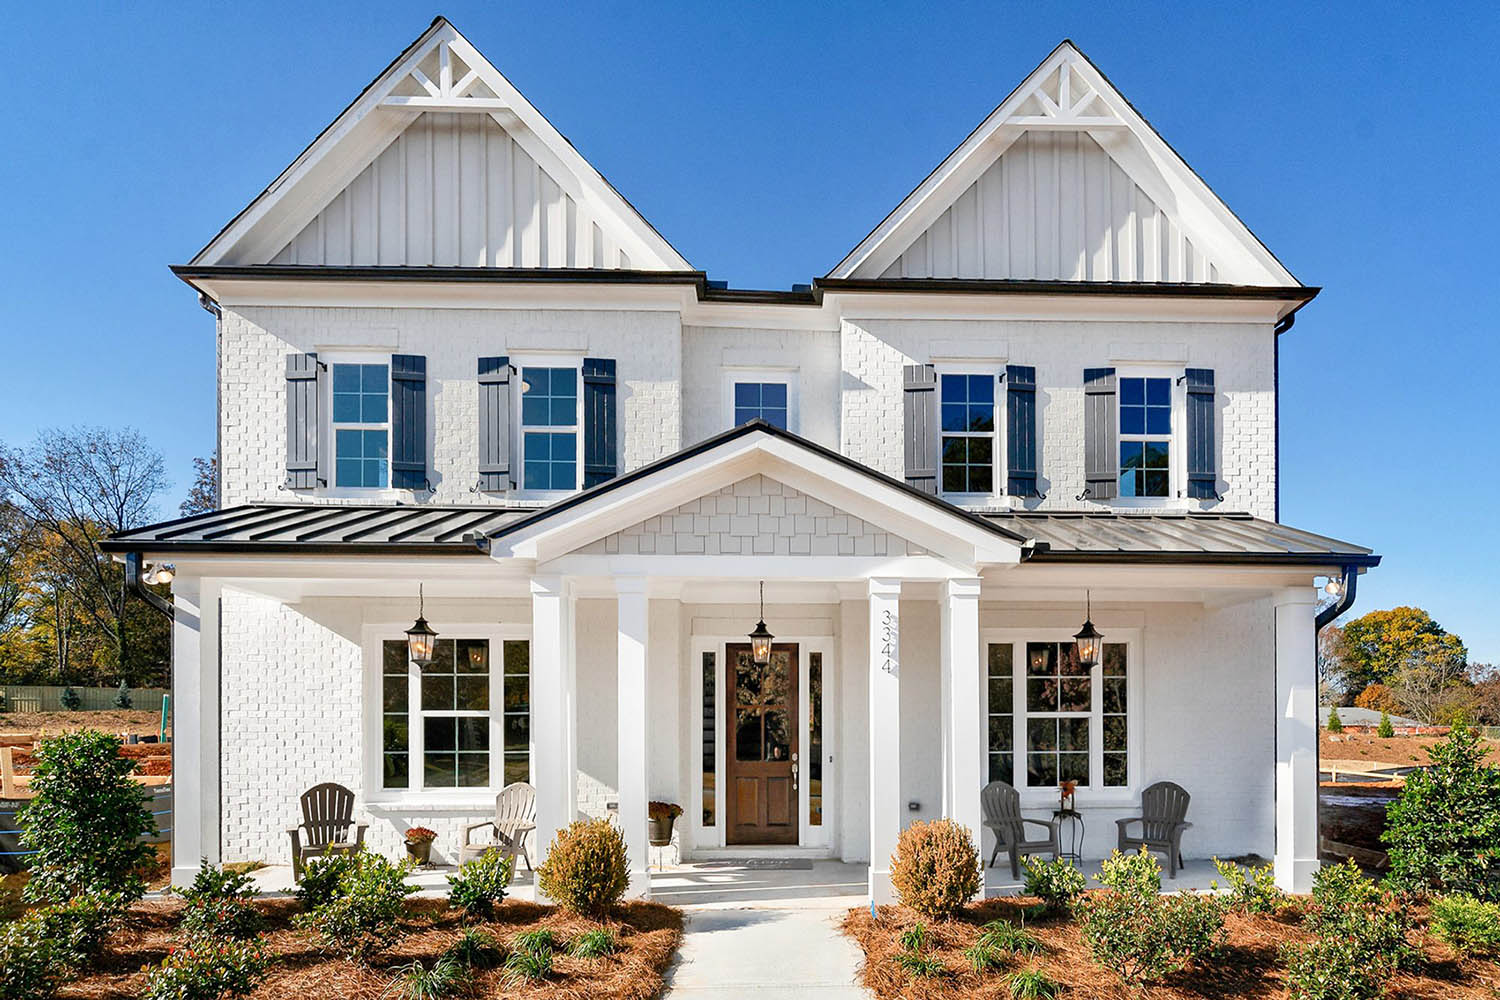 White and black transitional home design. Painted white brick with black shutters and vertical siding accents. Real wood front door.